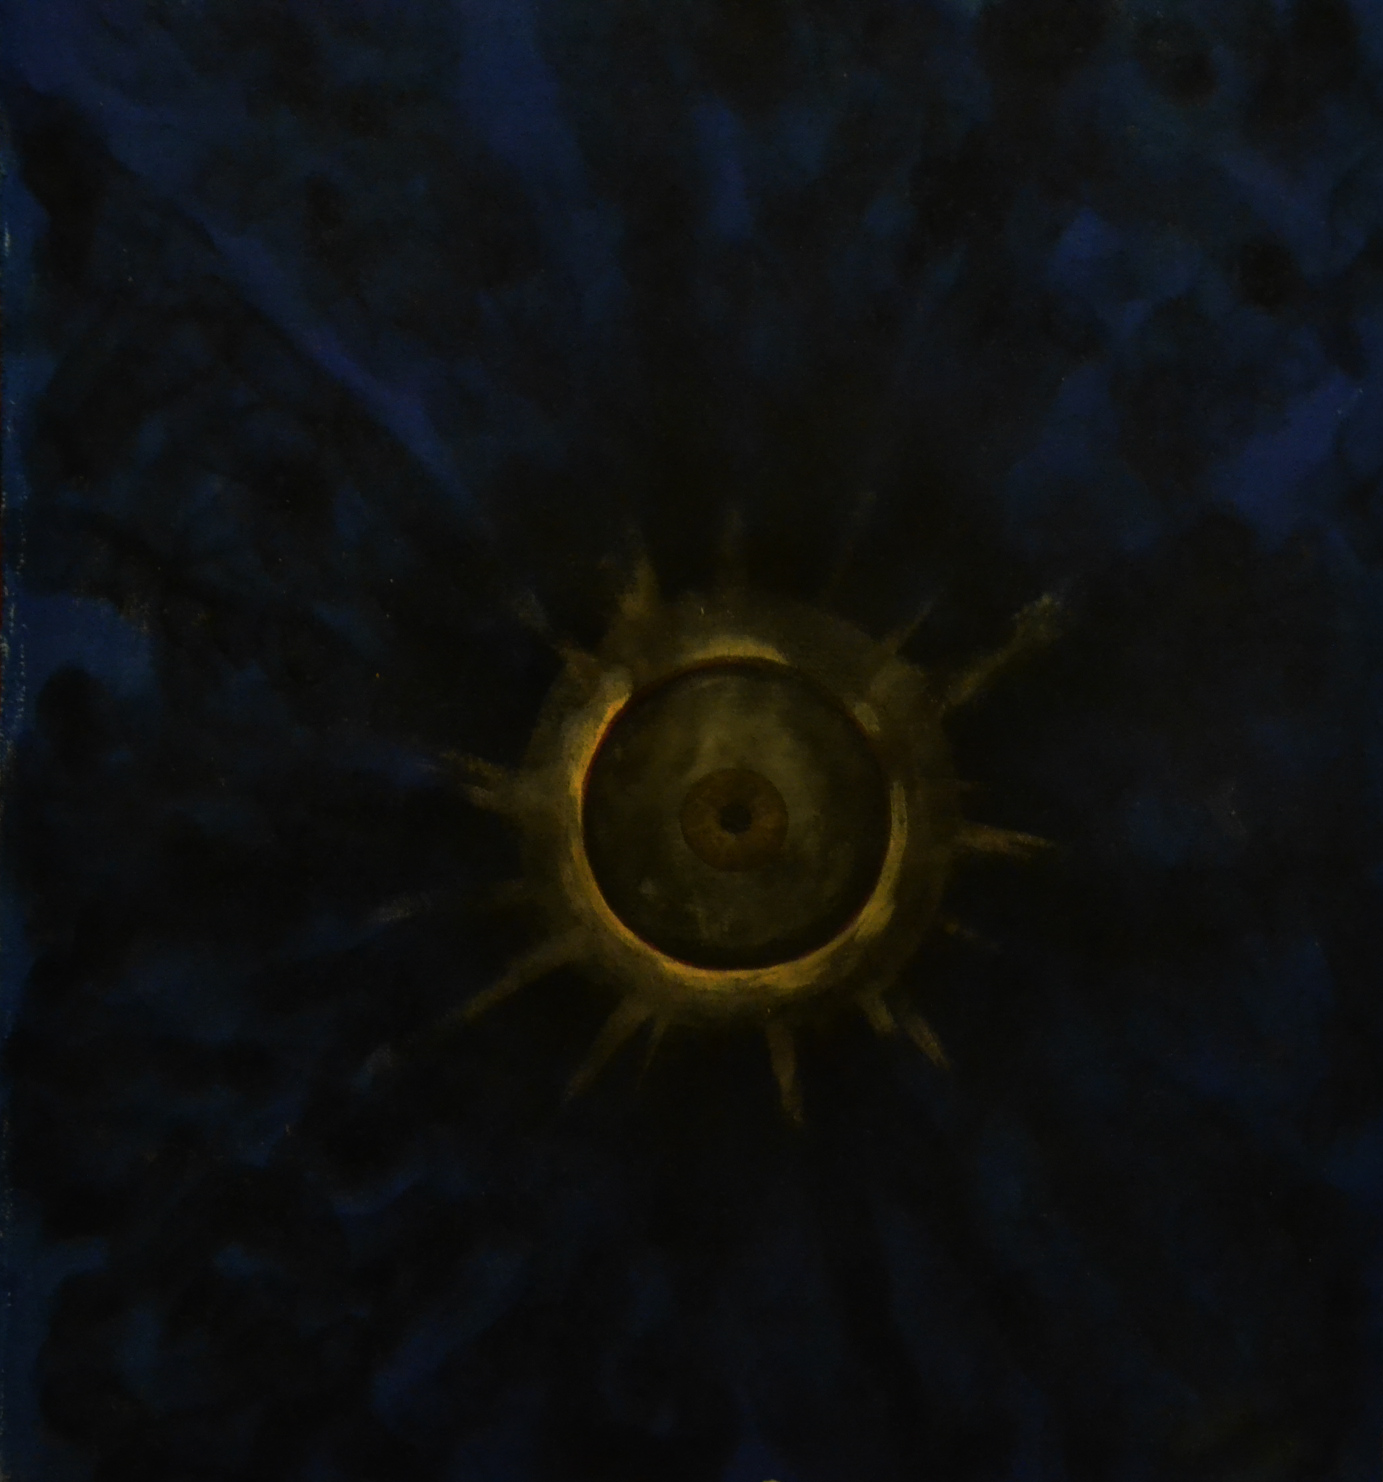 Eclipse of the eye